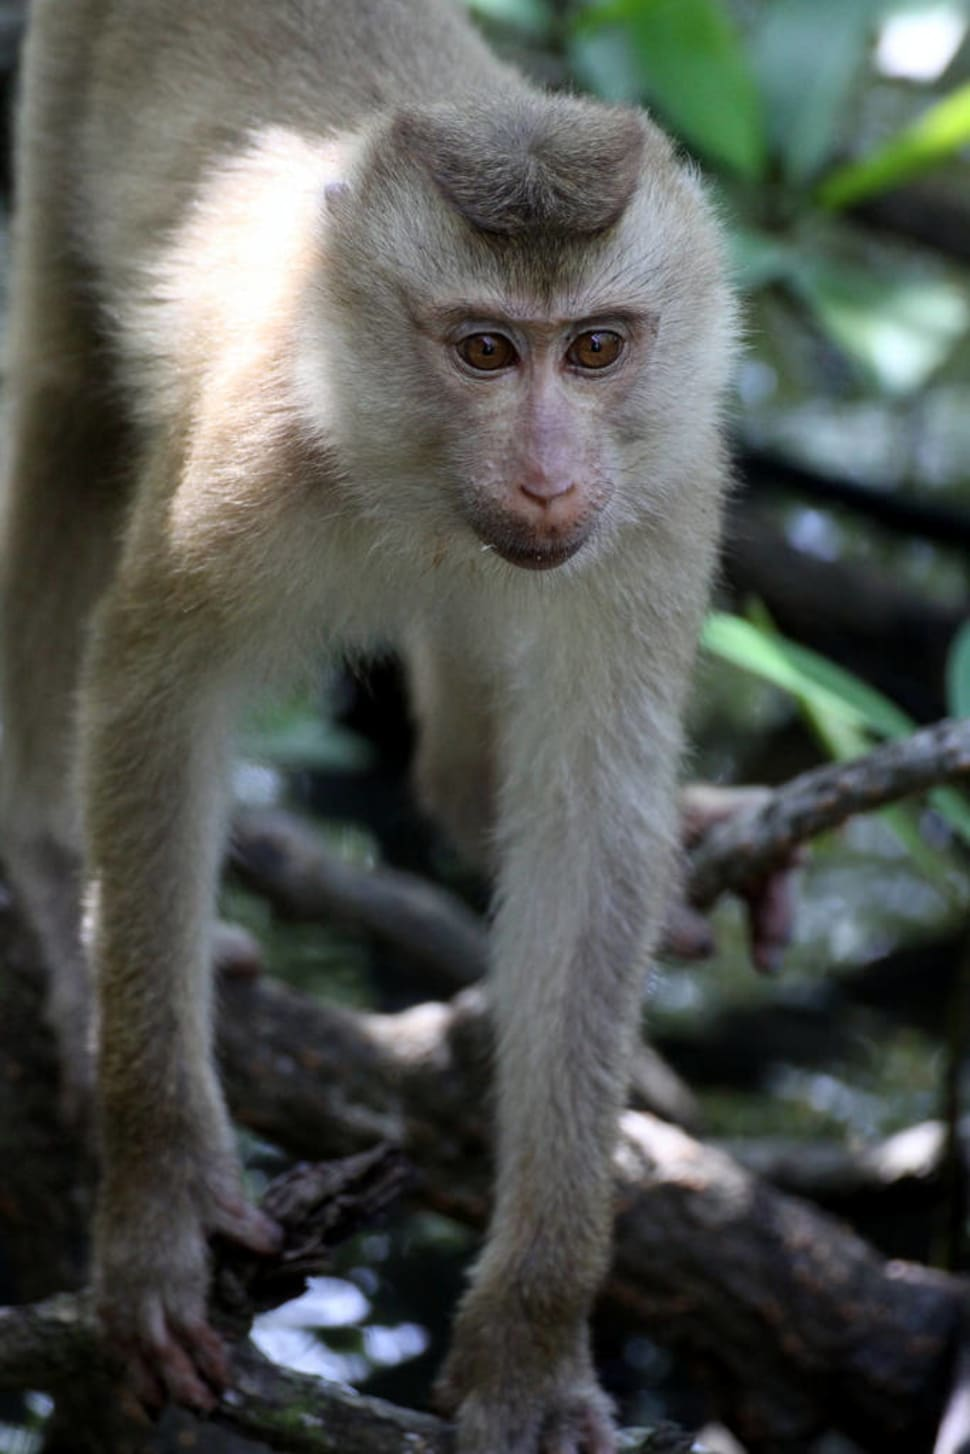 Best time to see Explore Wildlife in the Ream National Park in Cambodia